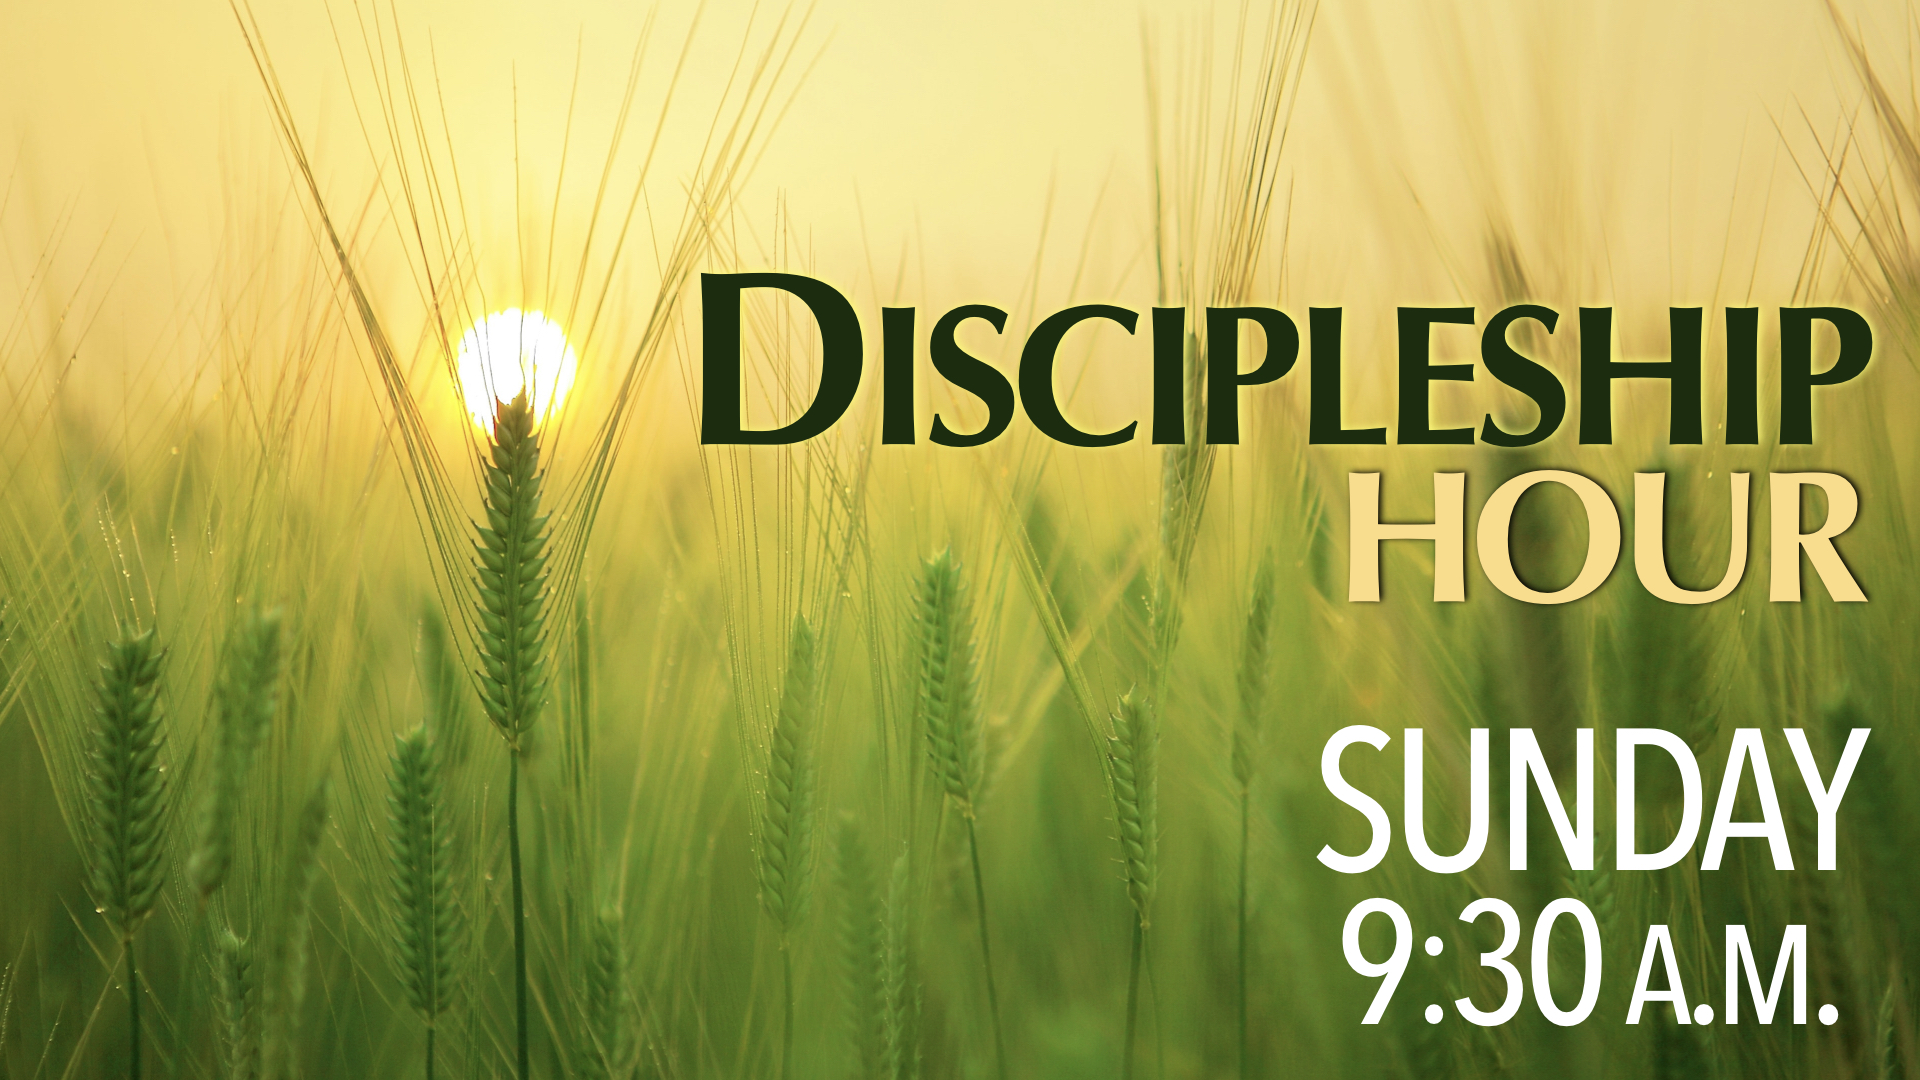 Sunday Discipleship Hour at 9:30 a.m.